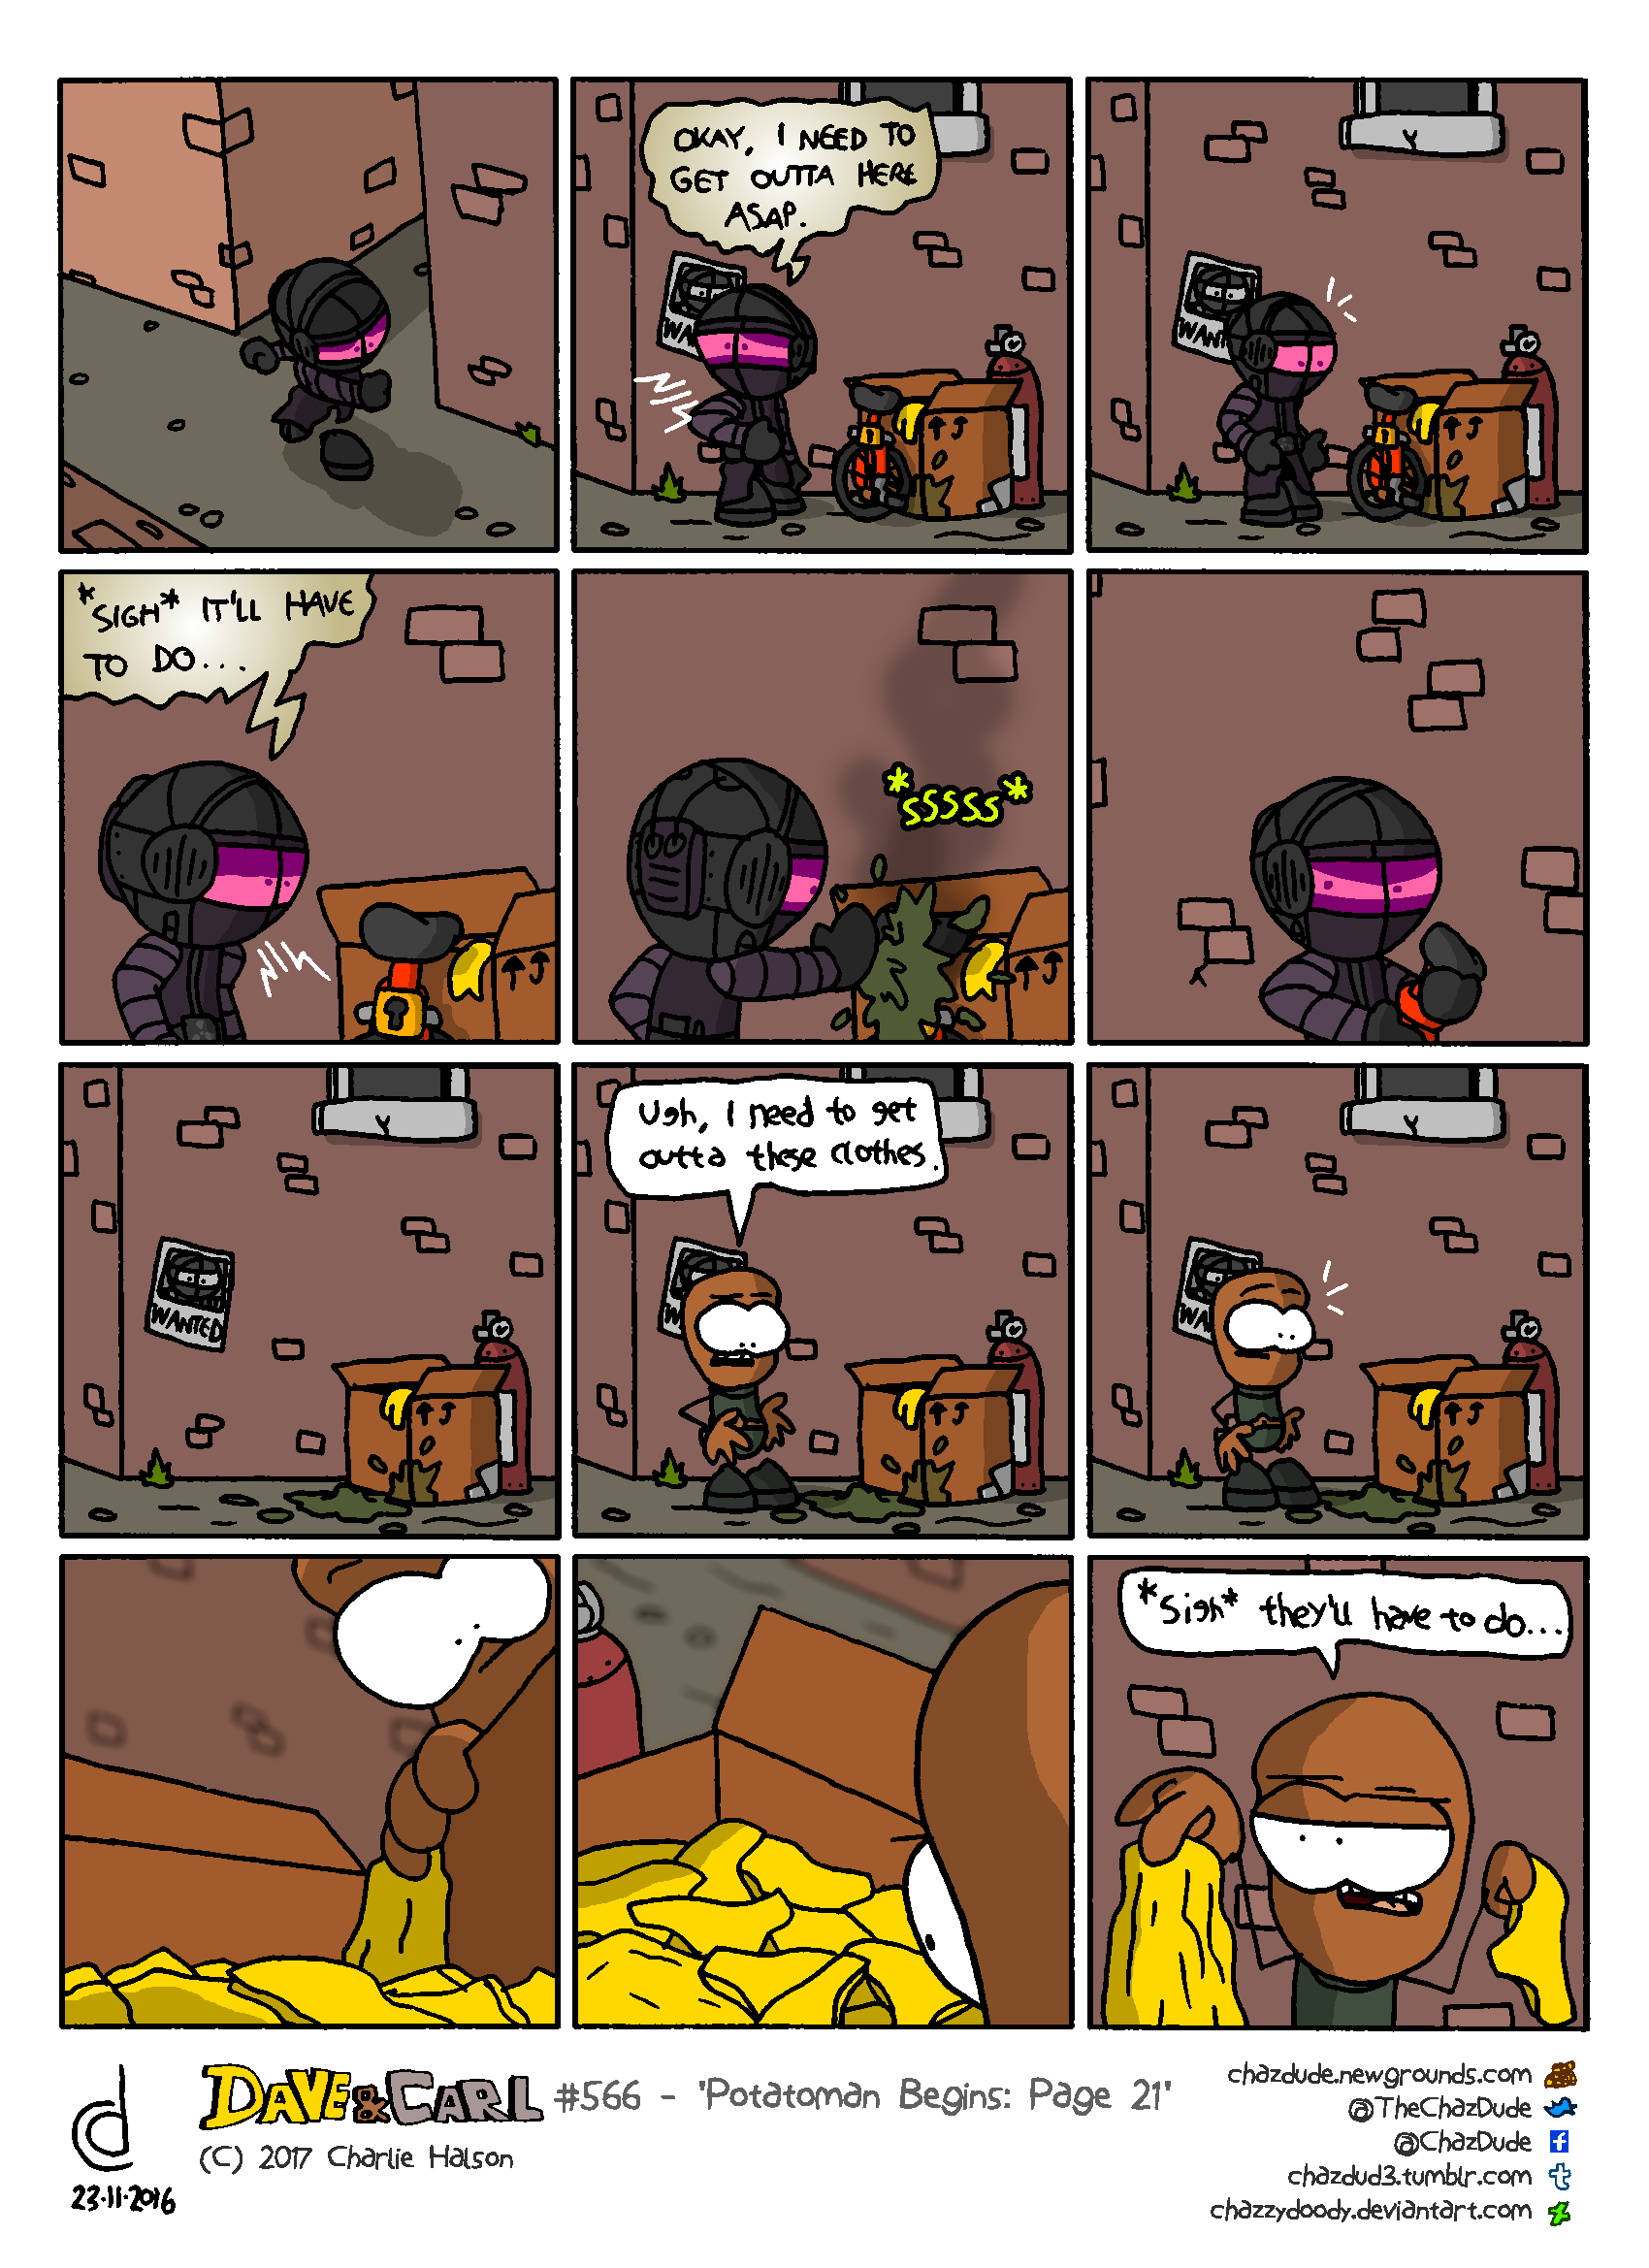 Potatoman Begins: Page 21